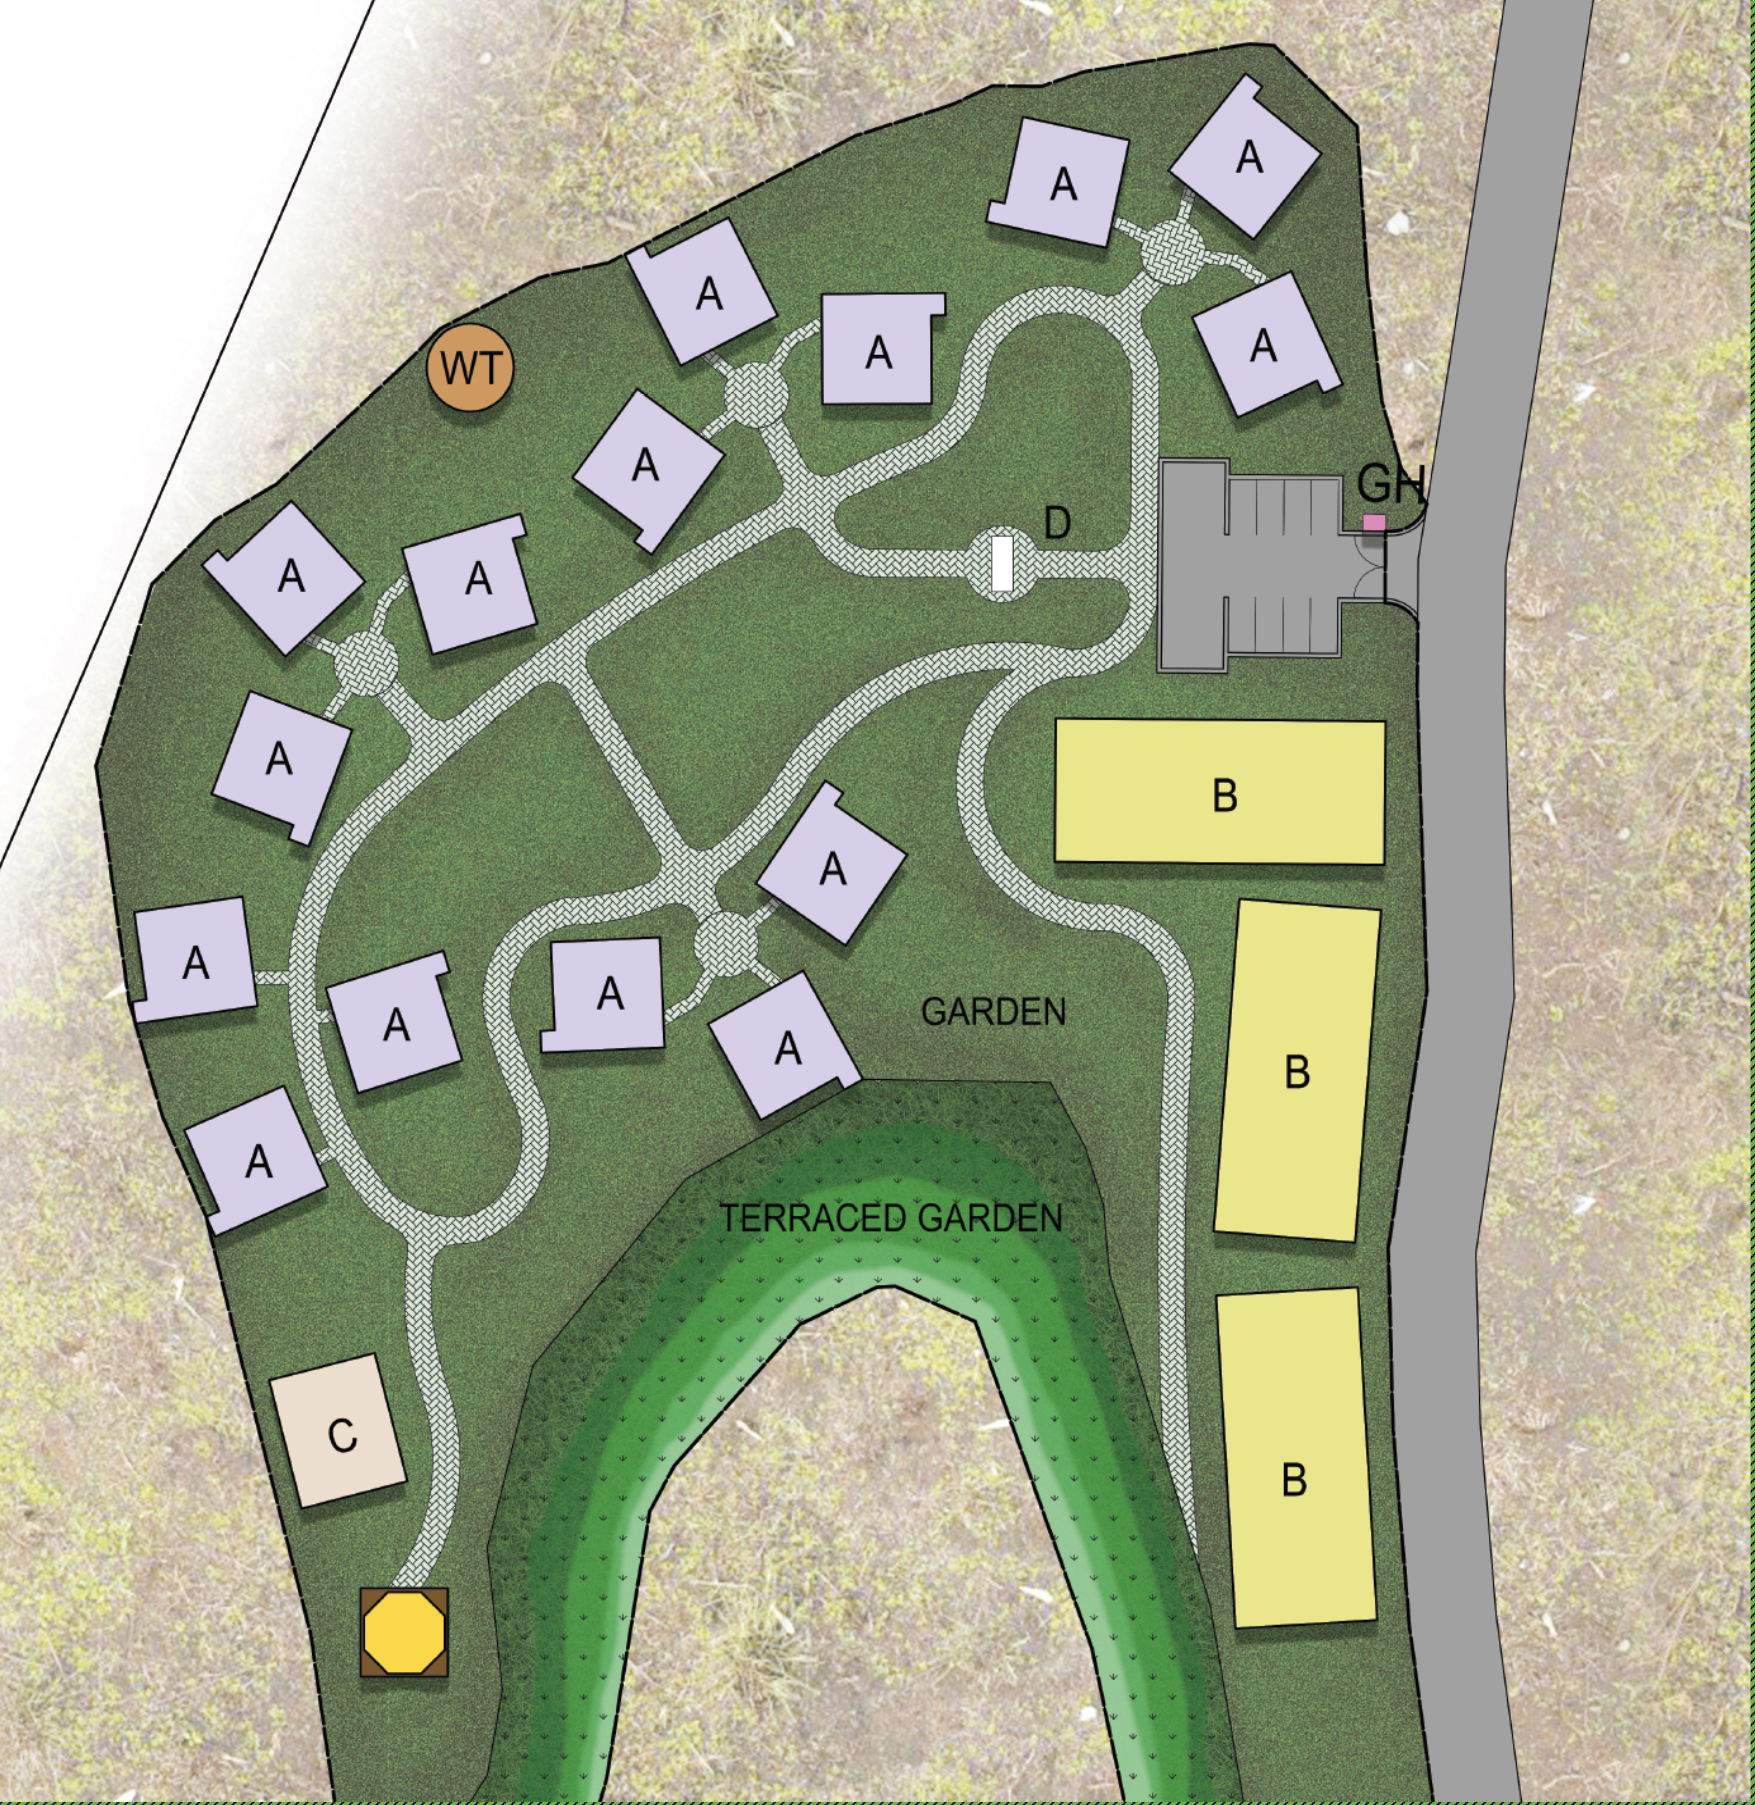 The layout of the Hope Mountain Center.